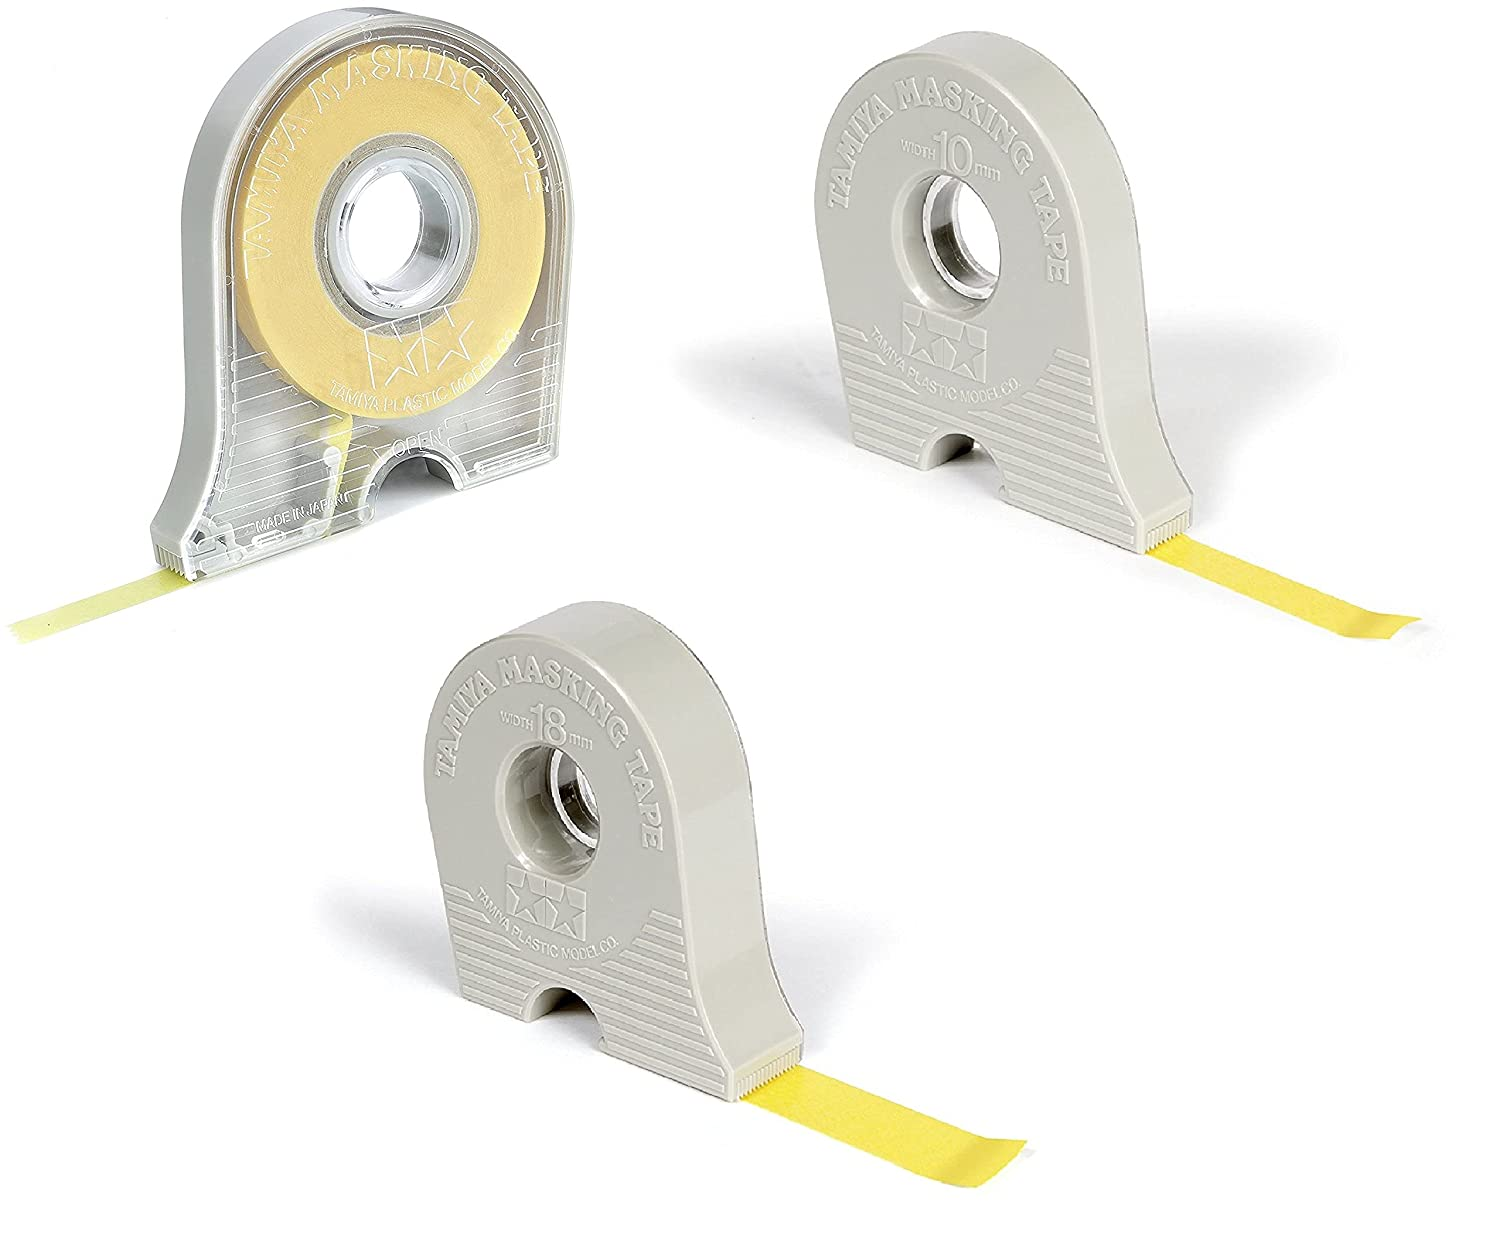 4 Pack Max 73% OFF of 3 Cheap mail order specialty store Masking Tape 10mm Dispensers by with 18mm 6mm